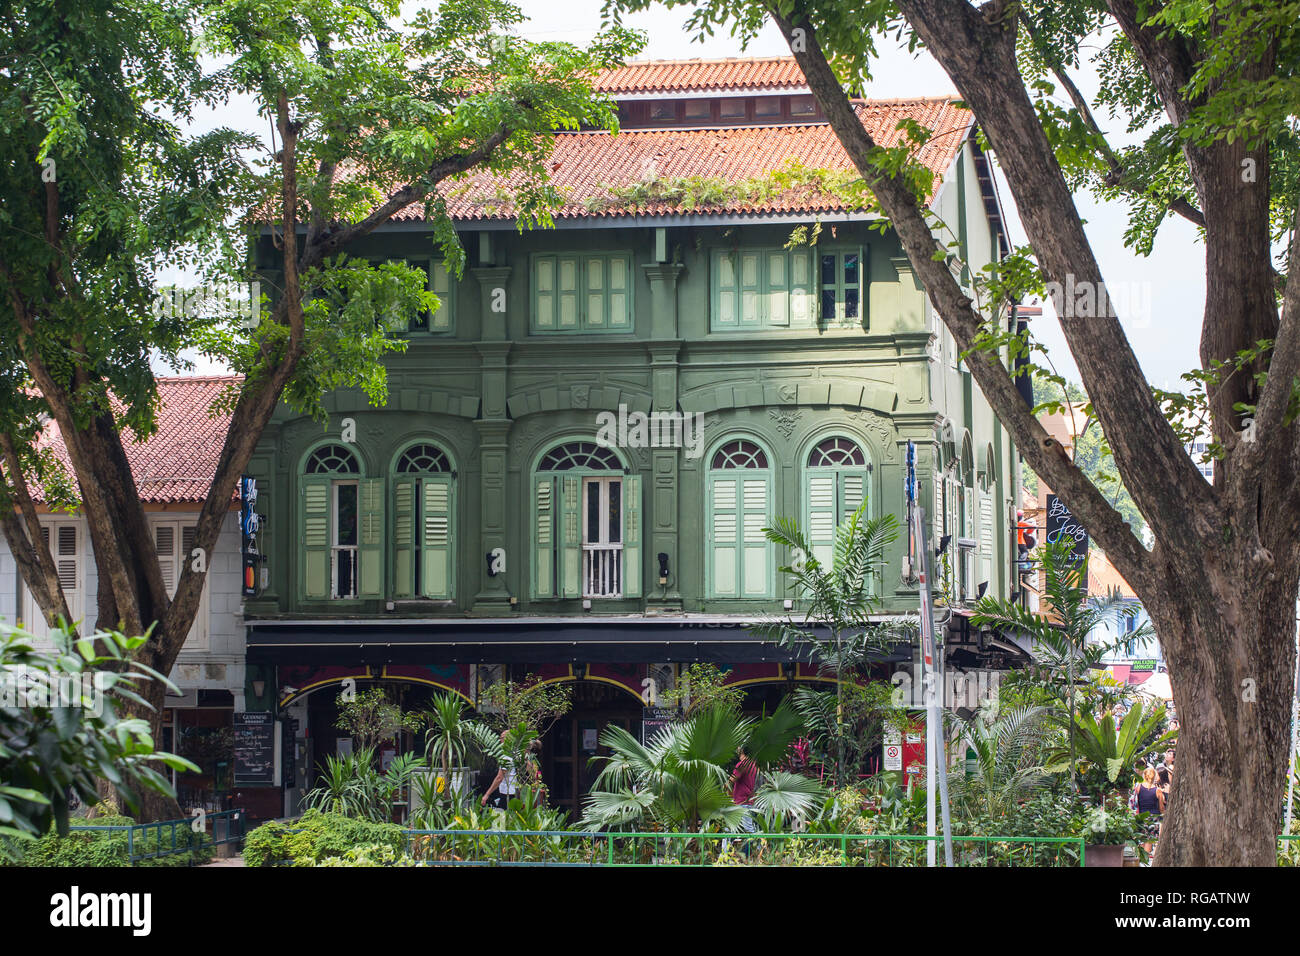 A green colour conserved shophouse along Ophir Road, or commonly known by local or tourists as Arab Street or Kampong Glam, Singapore. - Stock Image